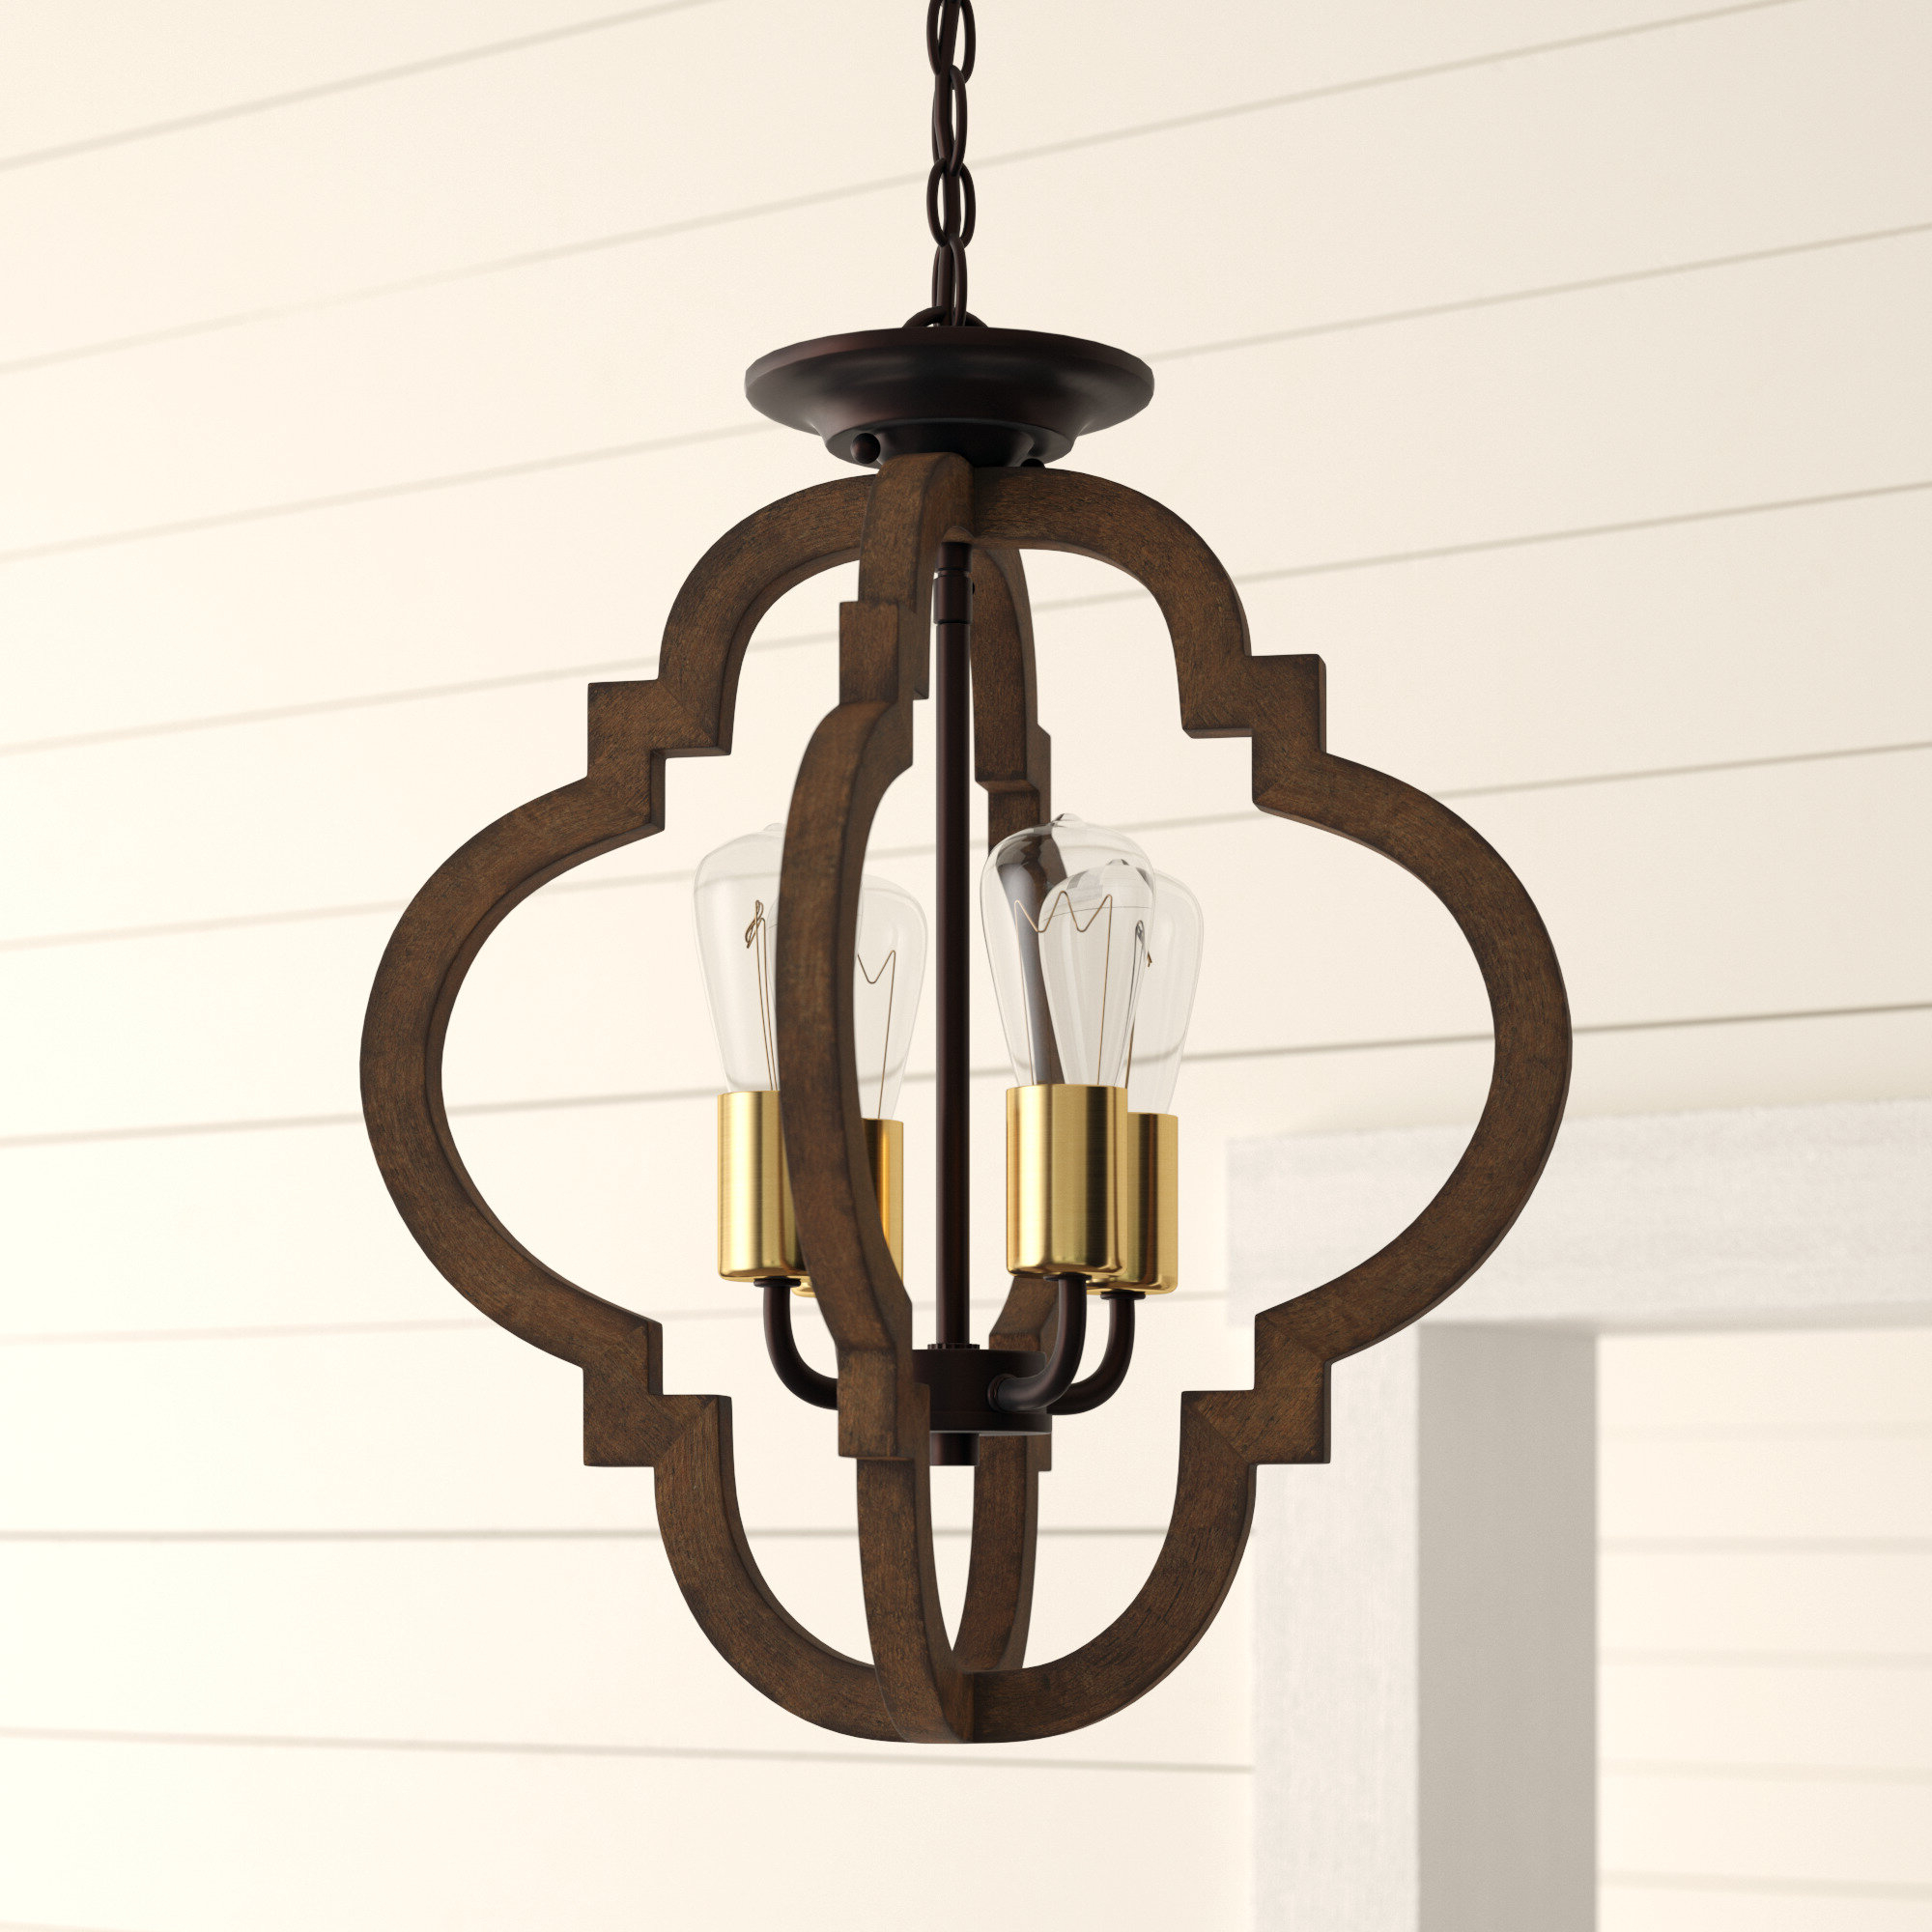 Kaycee 4 Light Geometric Chandelier For Recent Hendry 4 Light Globe Chandeliers (Gallery 9 of 25)